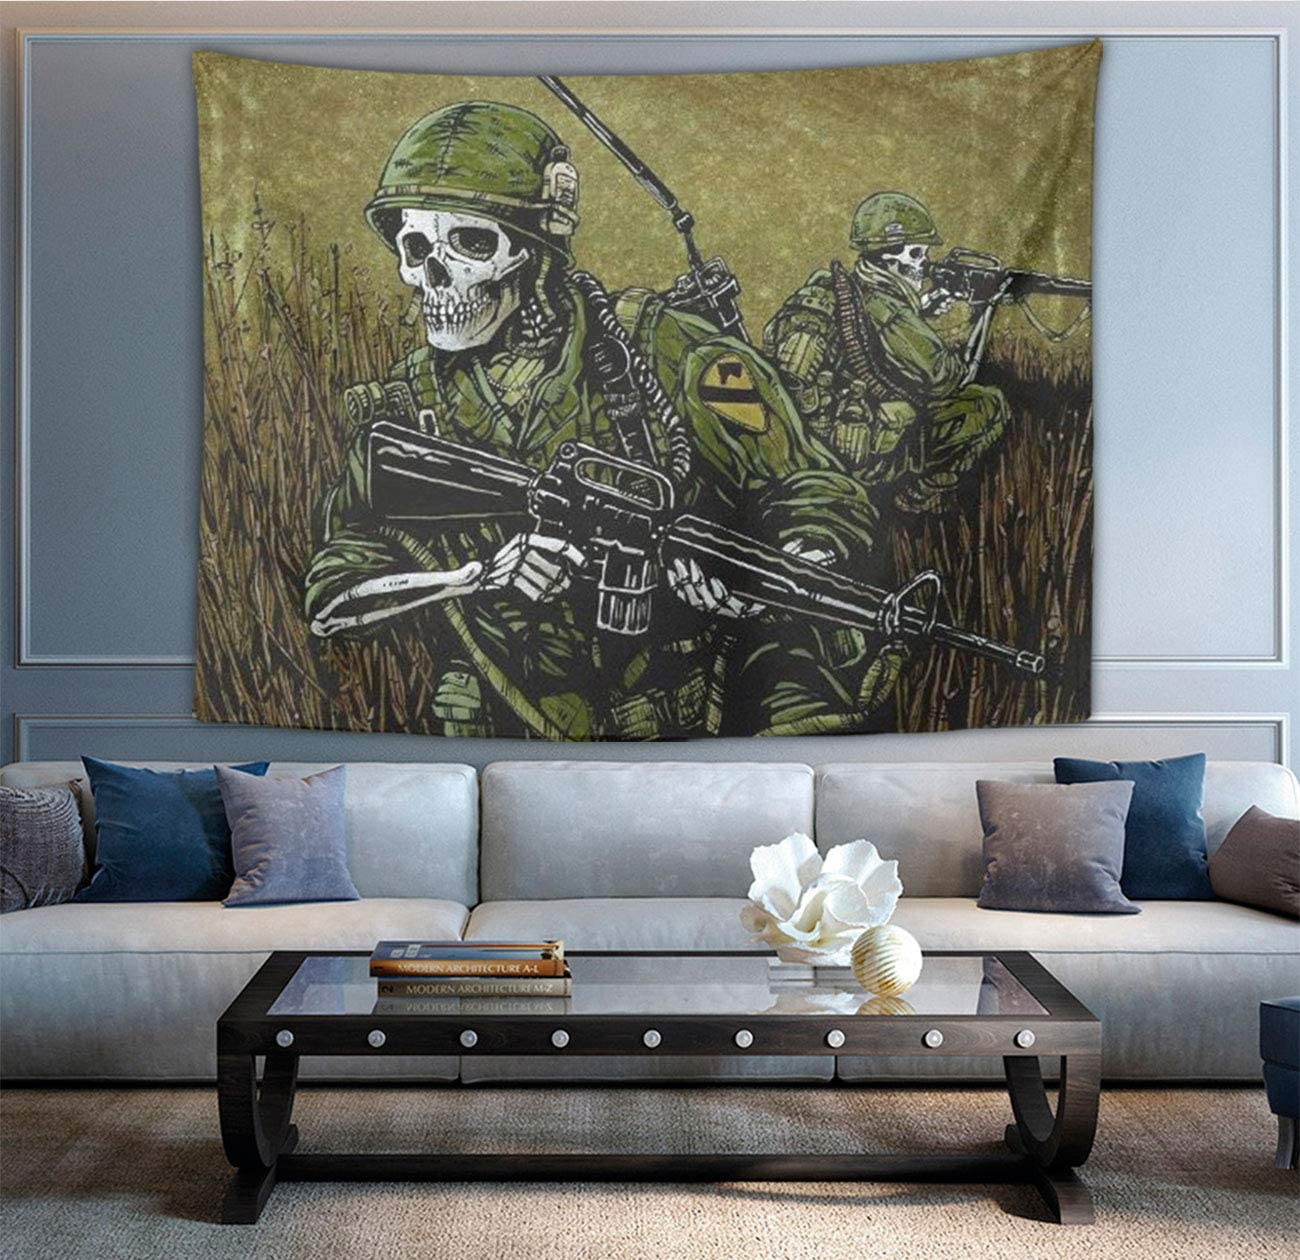 NiYoung Hippie Wall Tapestry Bedspread Picnic Blanket Wall Art Polyester Army Camouflage Sugar Skull Tapestries Home Decorations for Living Room Bedroom Dorm Decor in 60×90 Inches